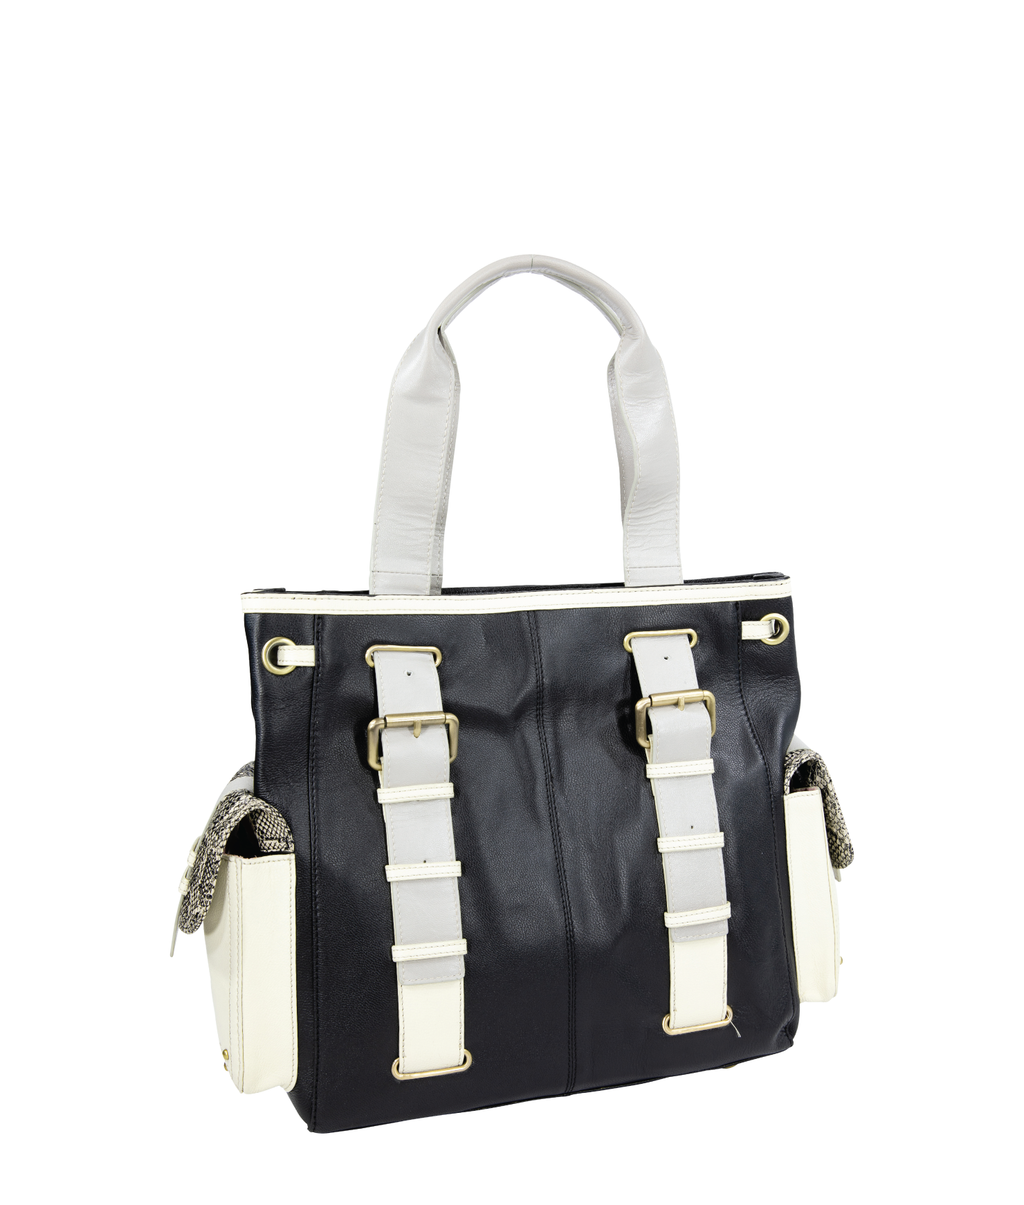 SYBELLA Carry All Tote - Moonbeam